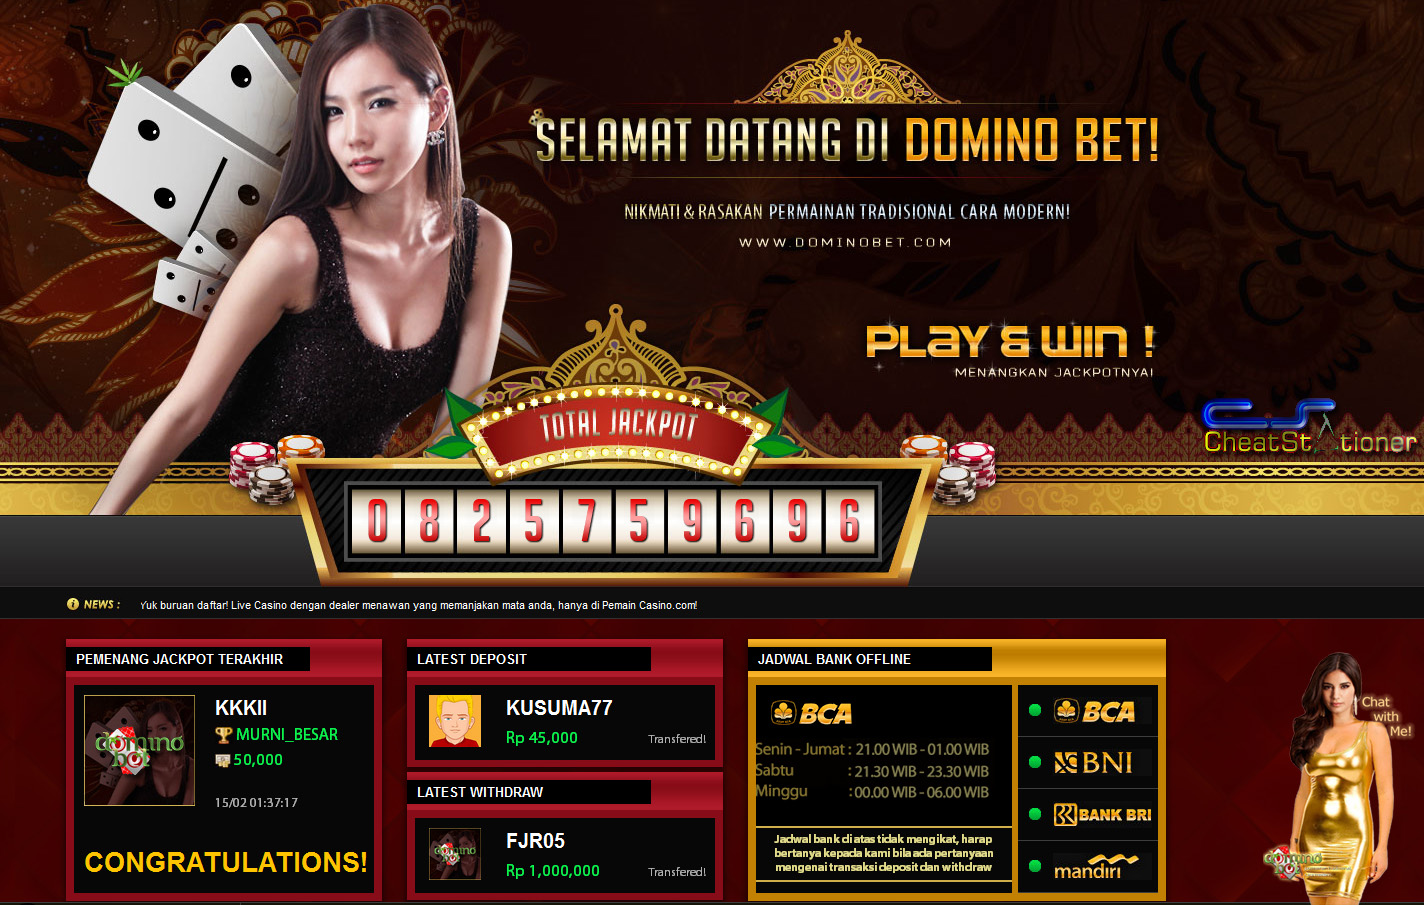 DominoBet Agen Domino Bet Online, Domino QQ Indonesia